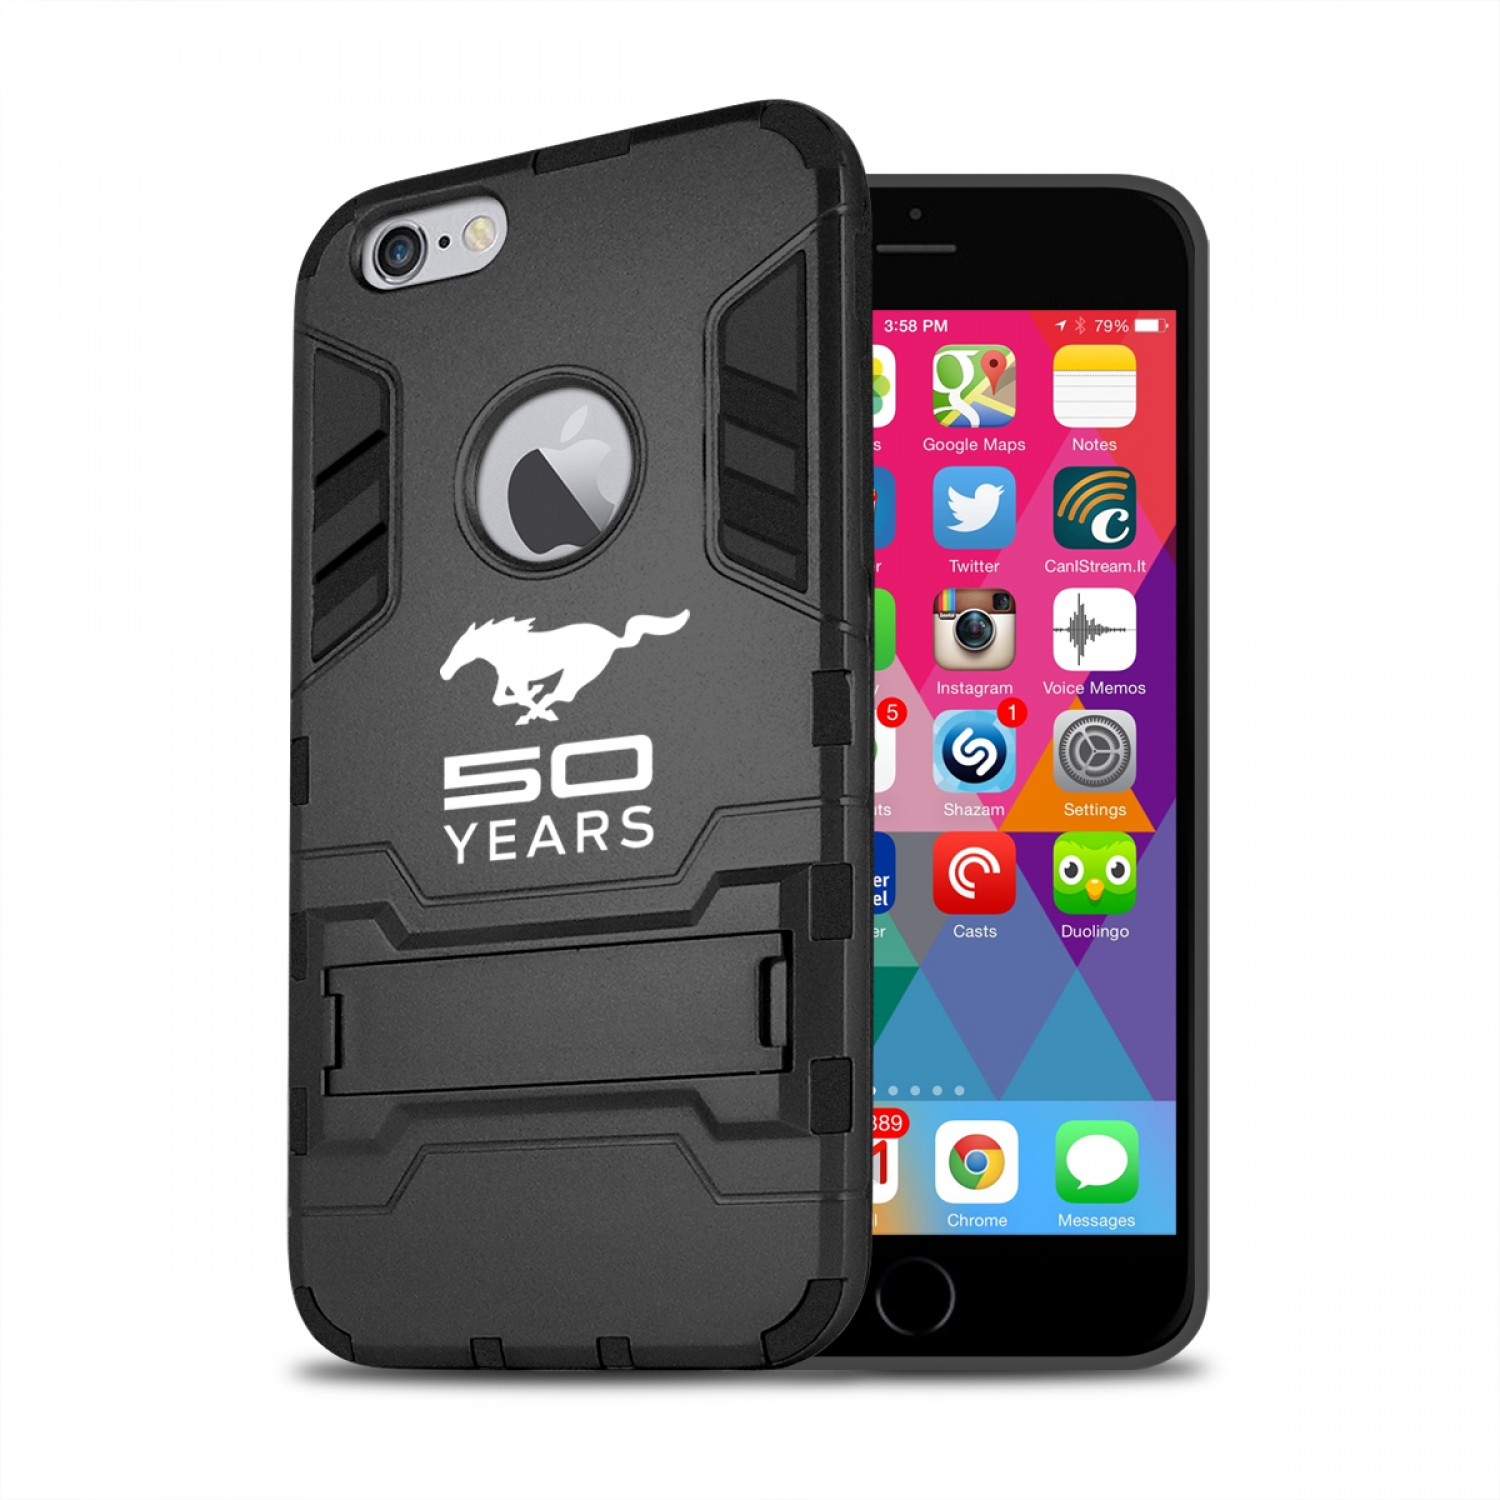 Ford Mustang 50 Years iPhone 6 6s Shockproof TPU ABS Hybrid Black Phone Case